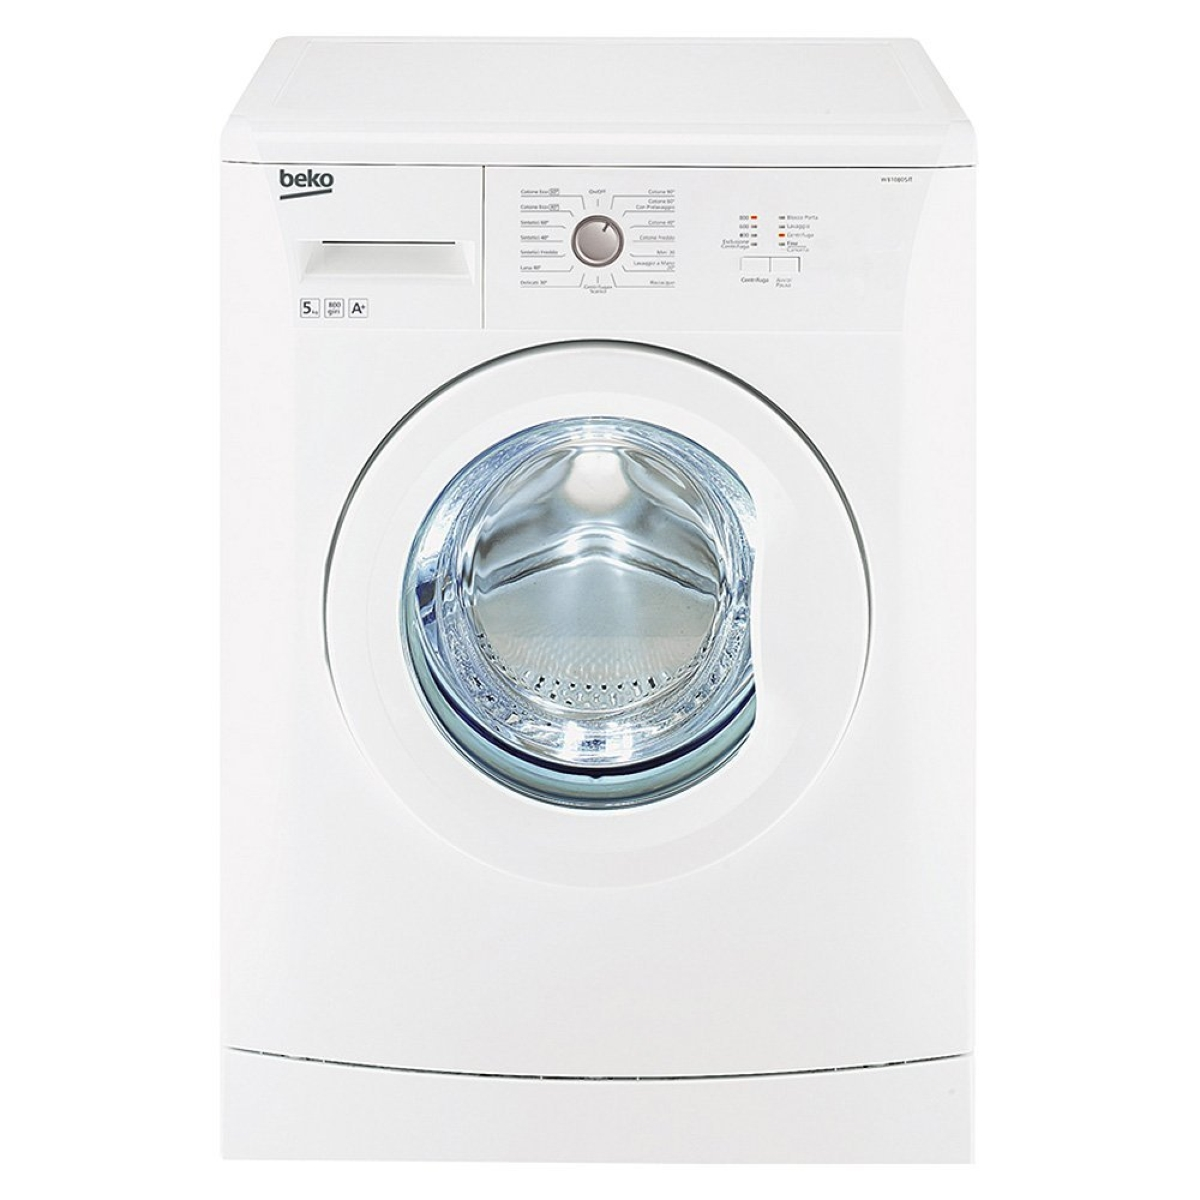 Which to choose a washing machine, beko WB EN 10805